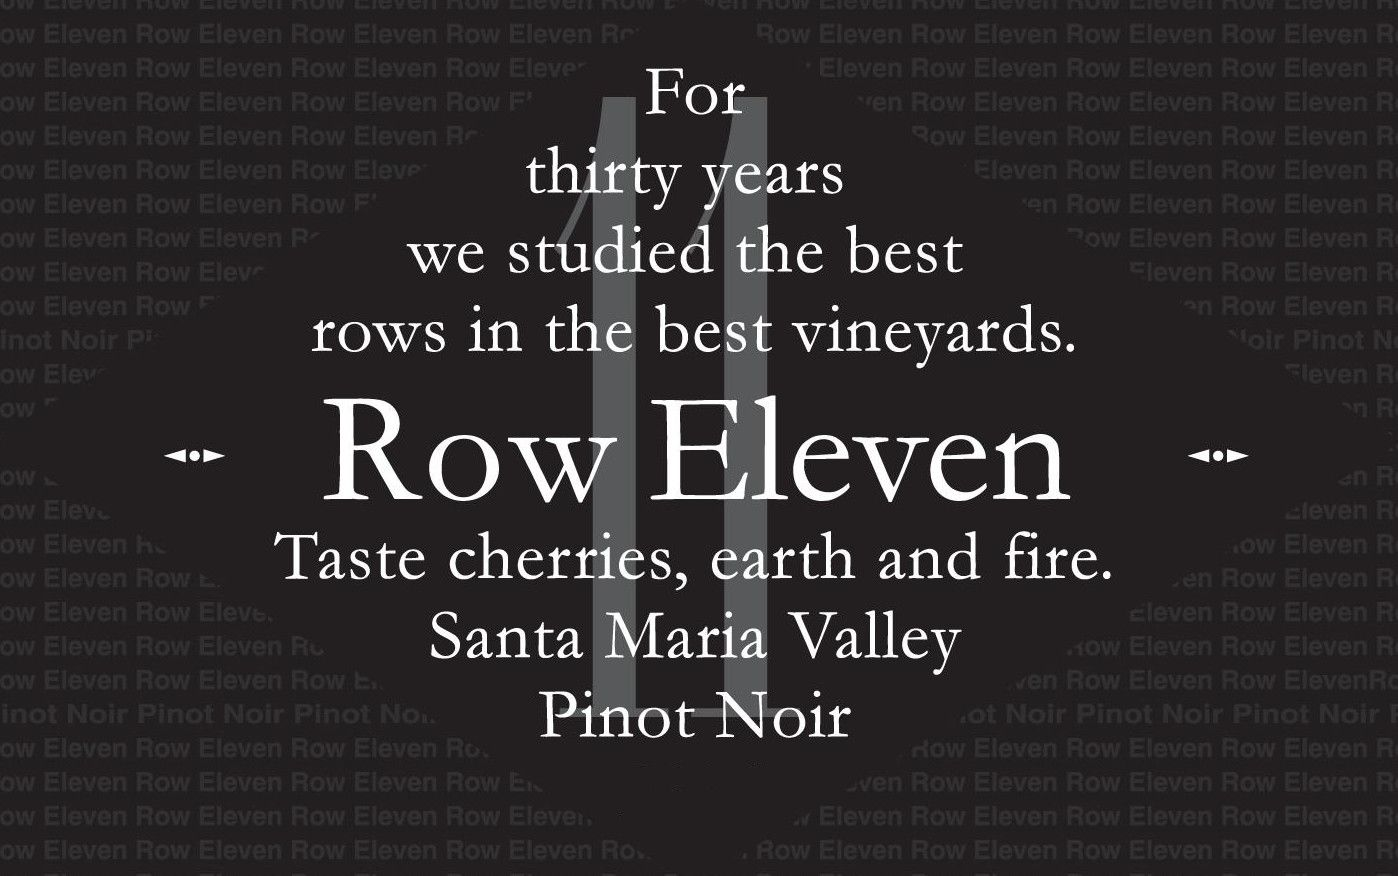 Row Eleven Pinot Noir 2006 Front Label